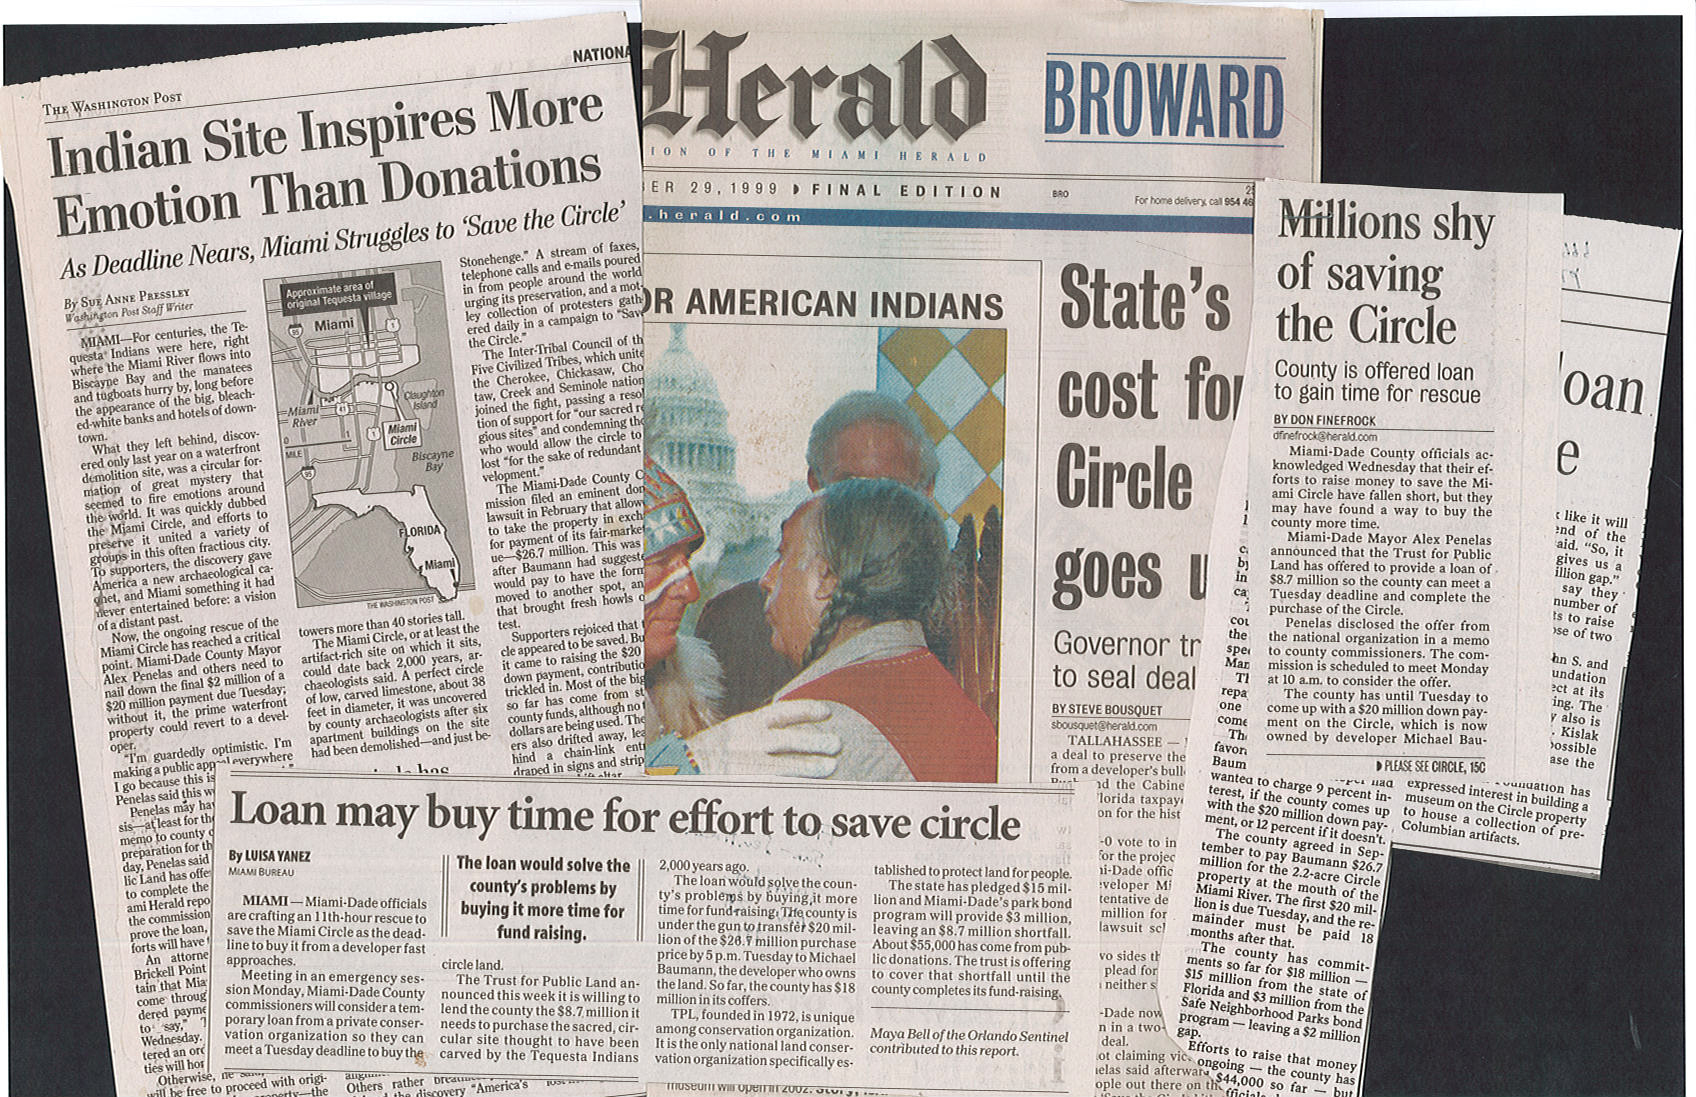 Image of newspaper articles spread out about the Miami Circle site.